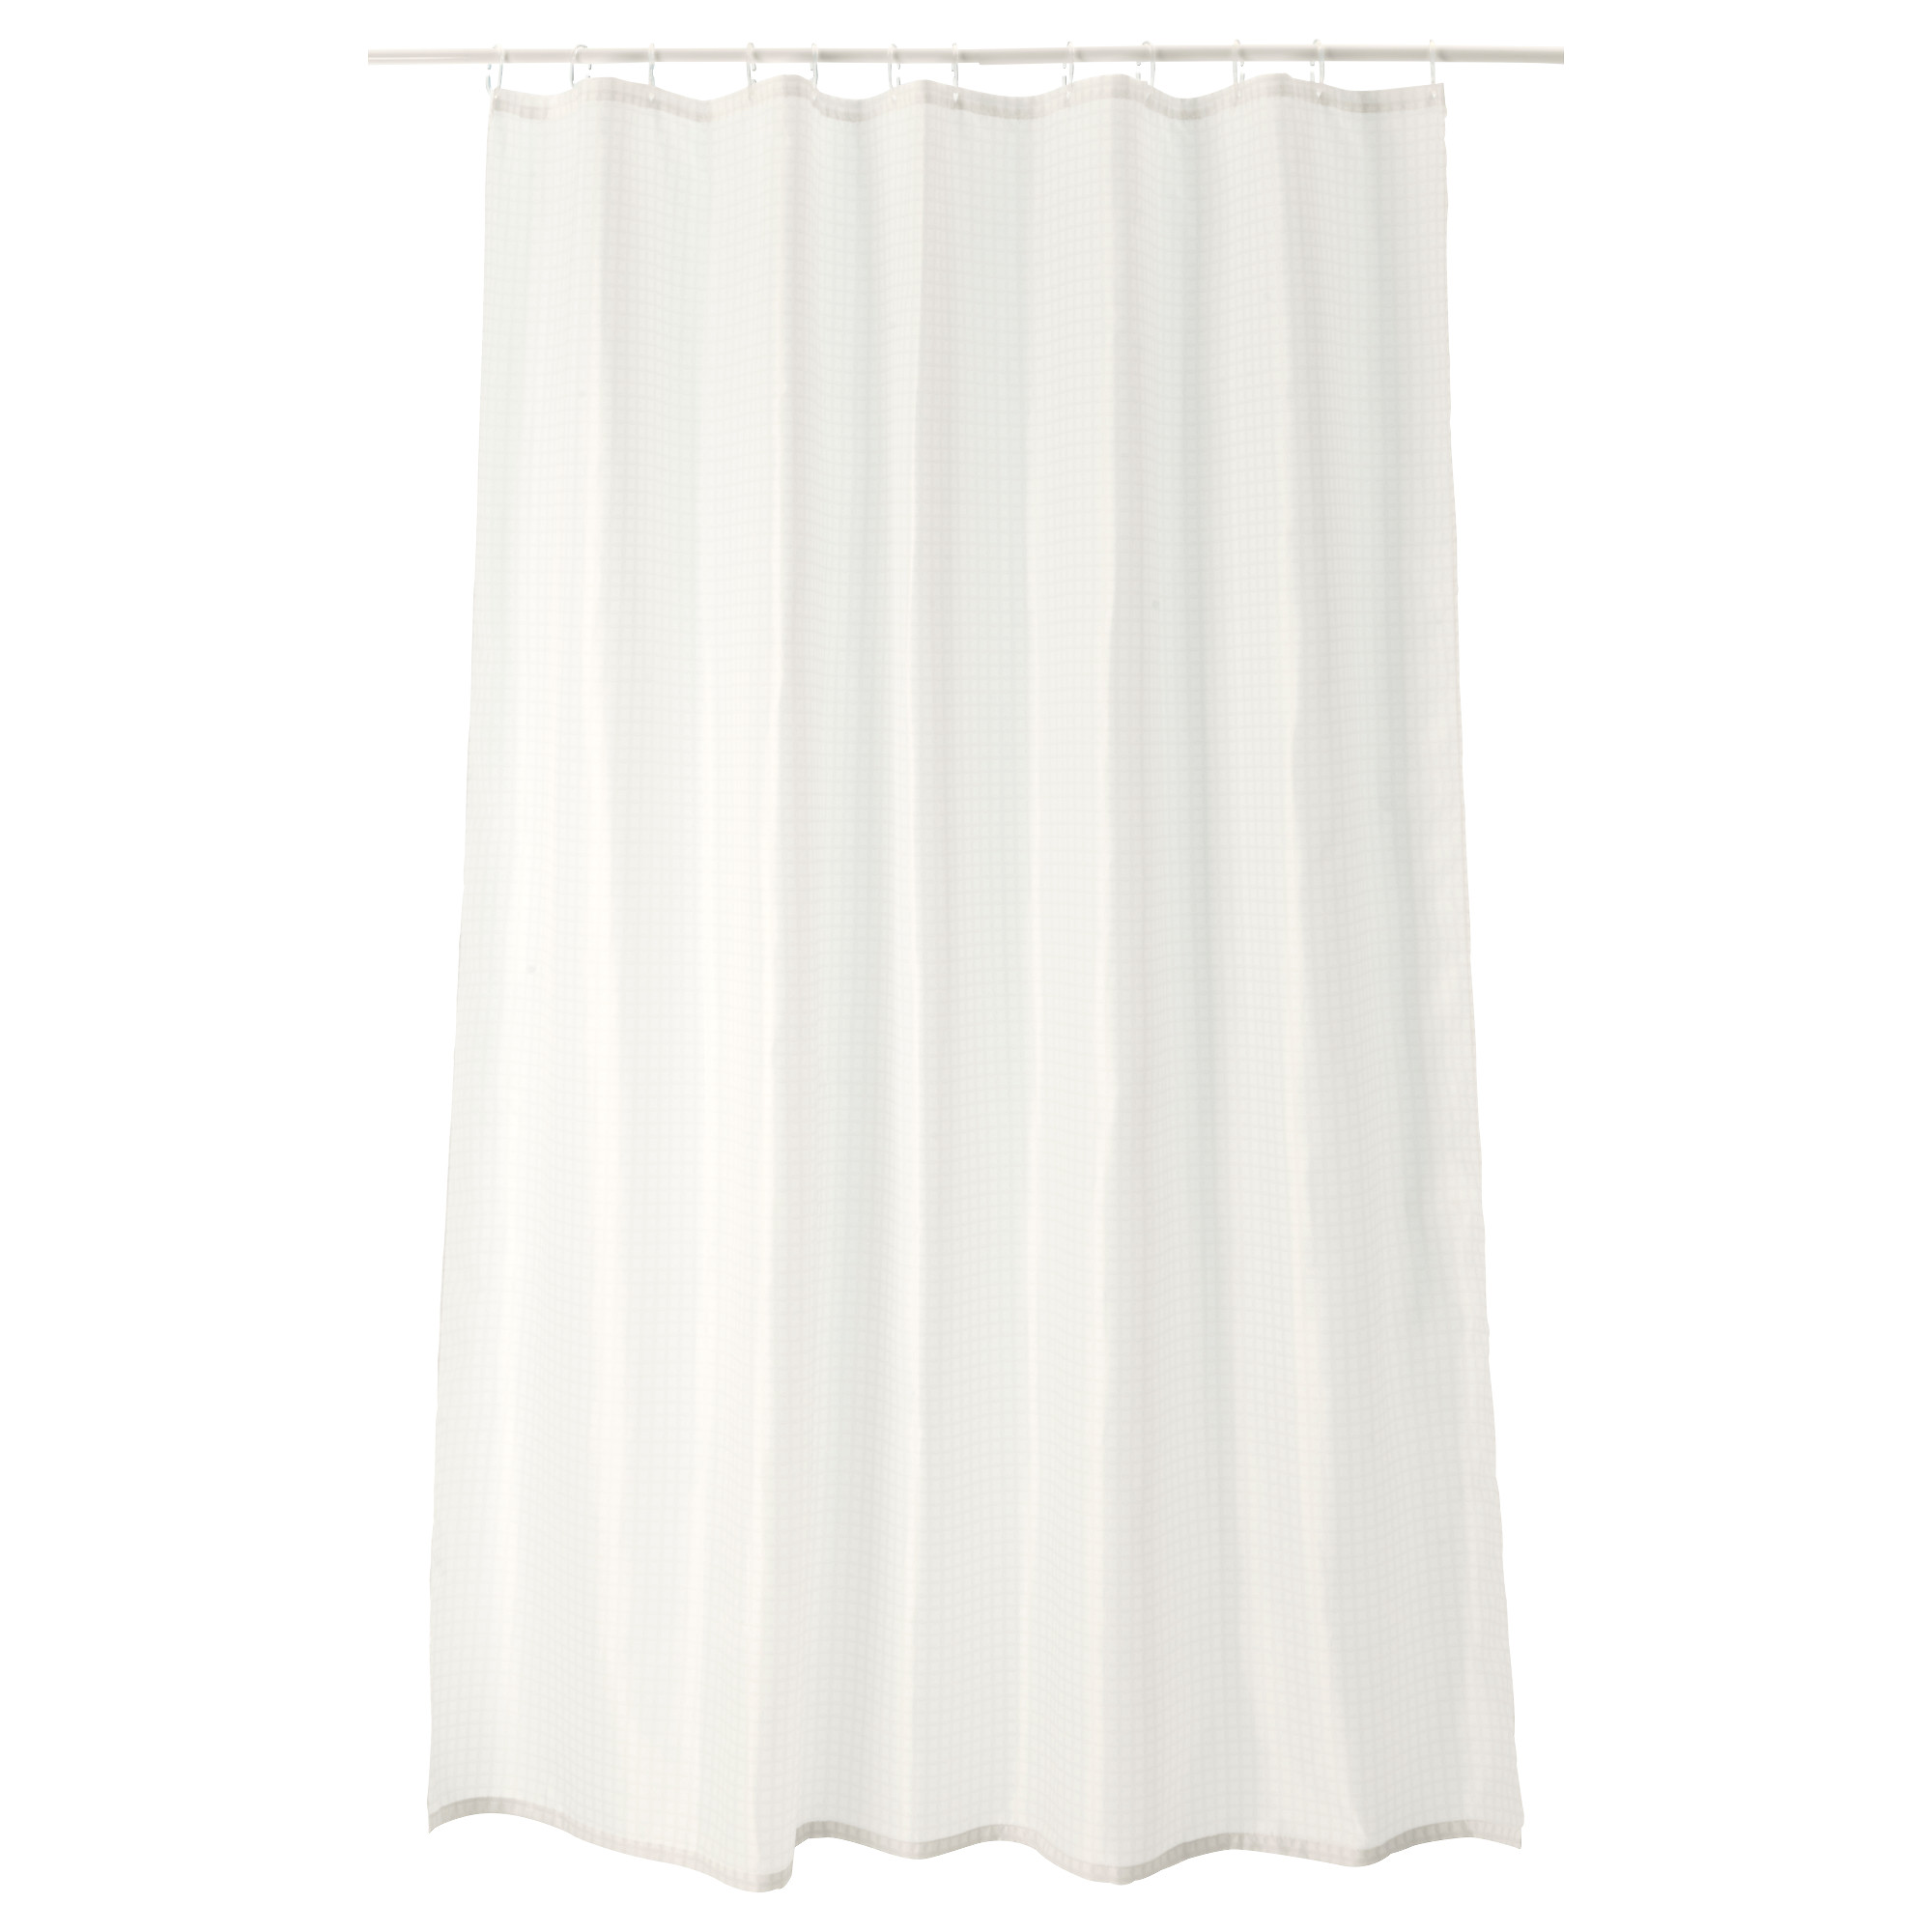 Ikea Shower Curtain for Best Your Bathroom Decoration: Extra Long Shower Curtain Target | Ikea Shower Curtain | See Through Shower Curtains